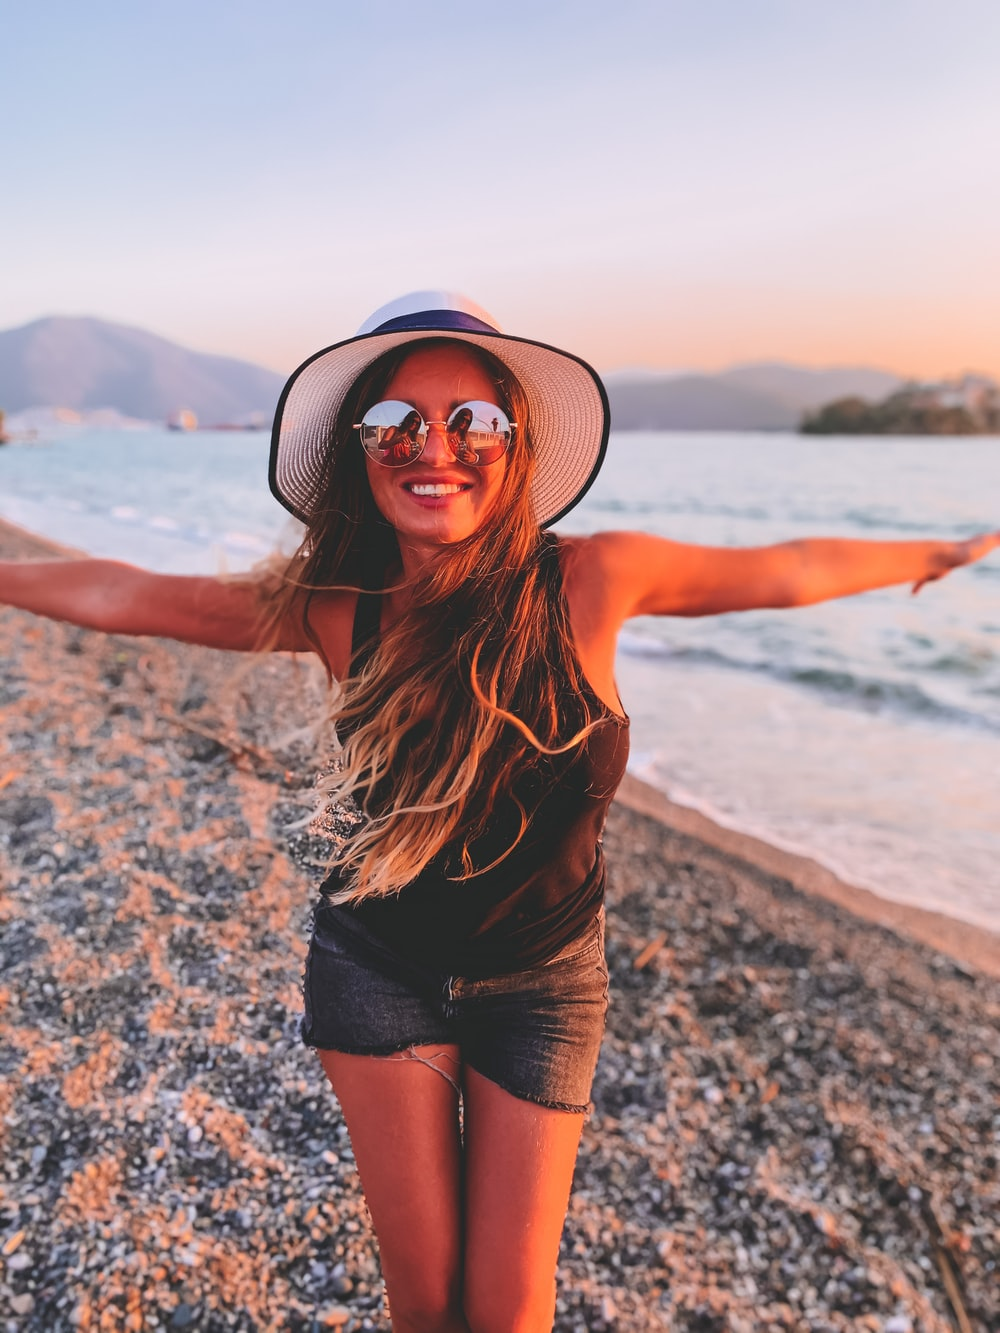 woman in black tank top and black shorts wearing black sun hat standing on beach shore